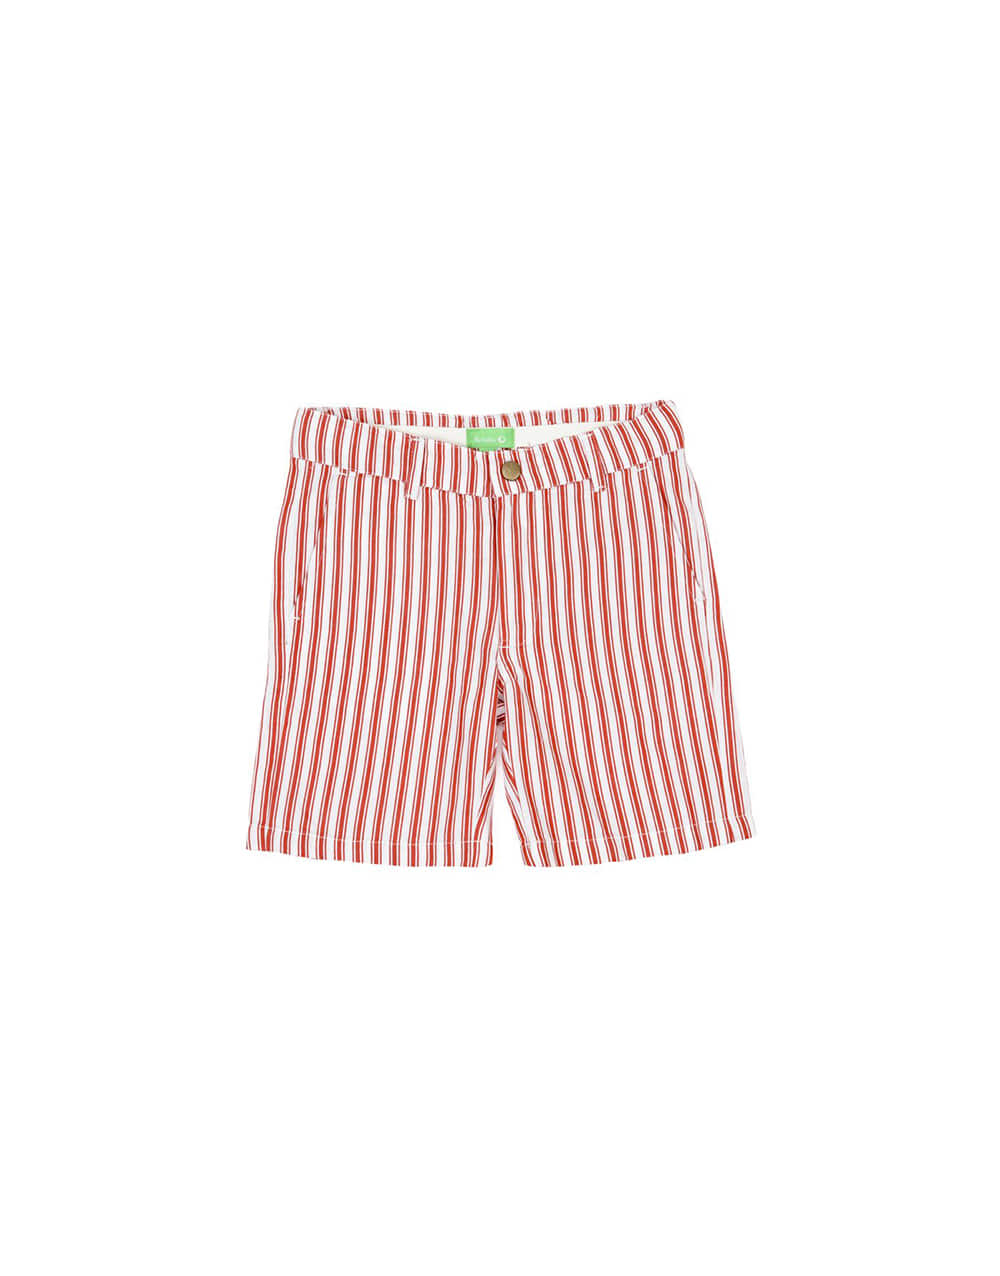 LILY BALOU  Astor Bermuda  Boat Stripe Strawberry